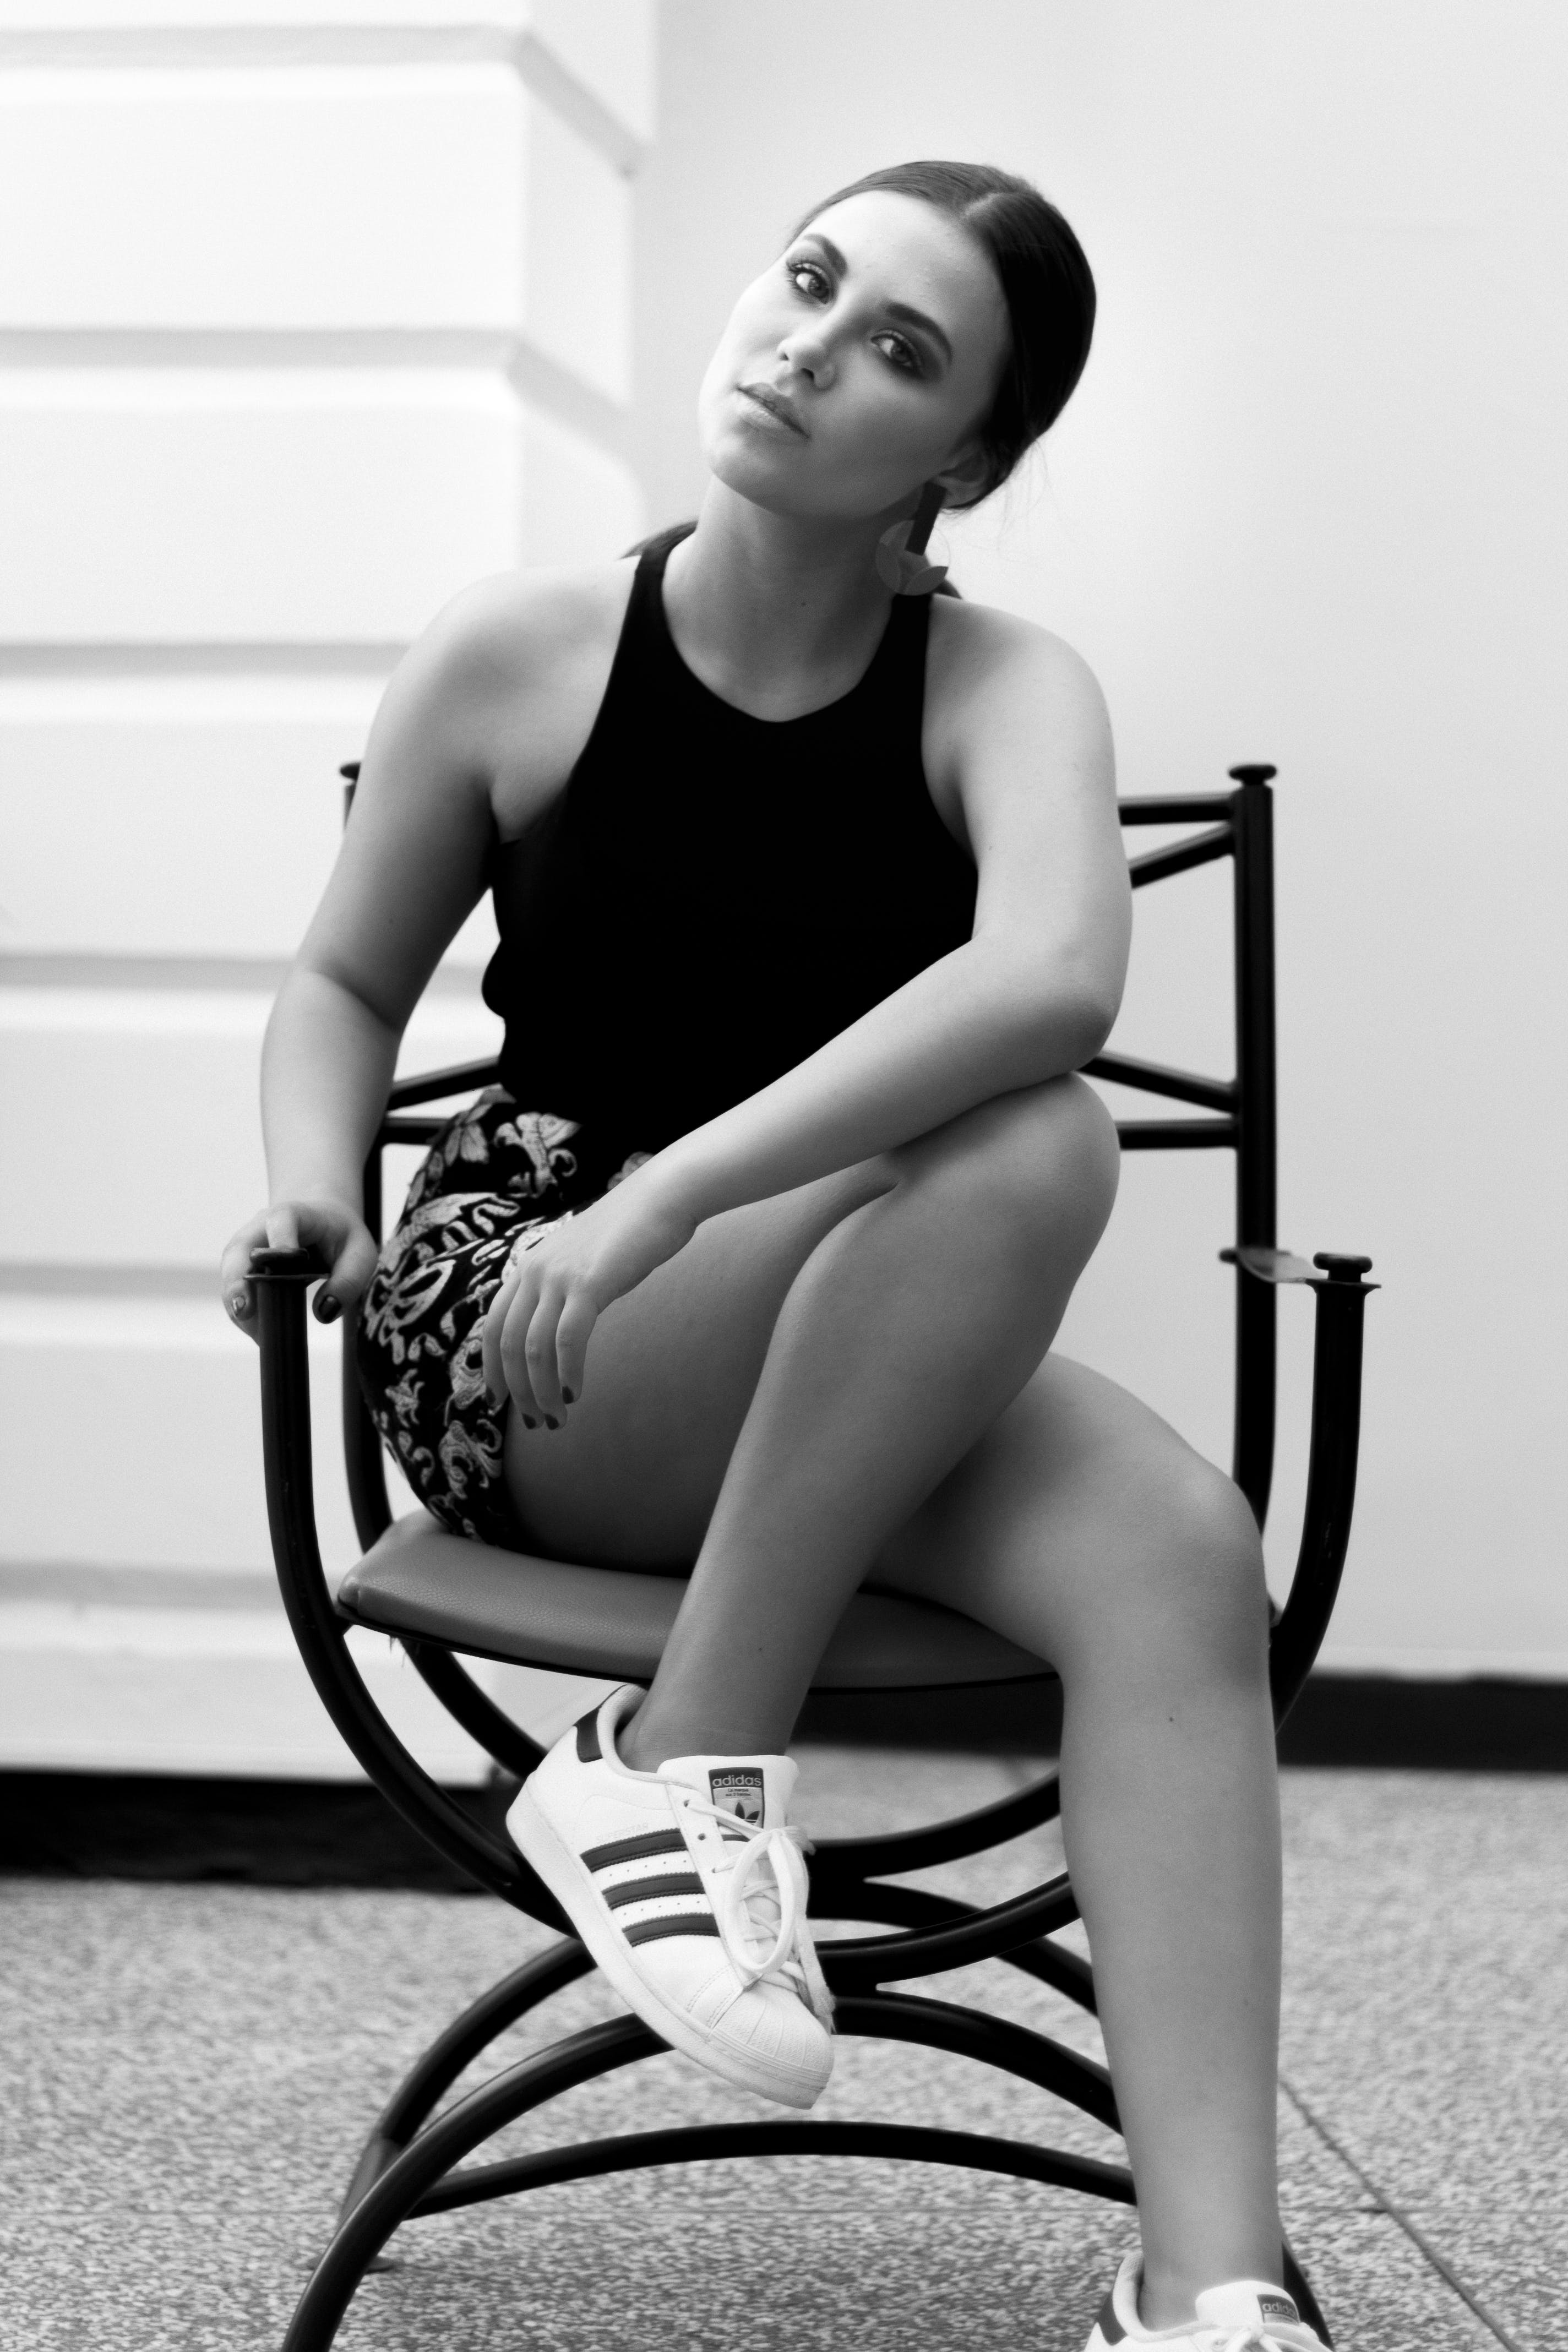 Grayscale Photo of Woman Wearing Sleeveless Tops and Floral Shorts